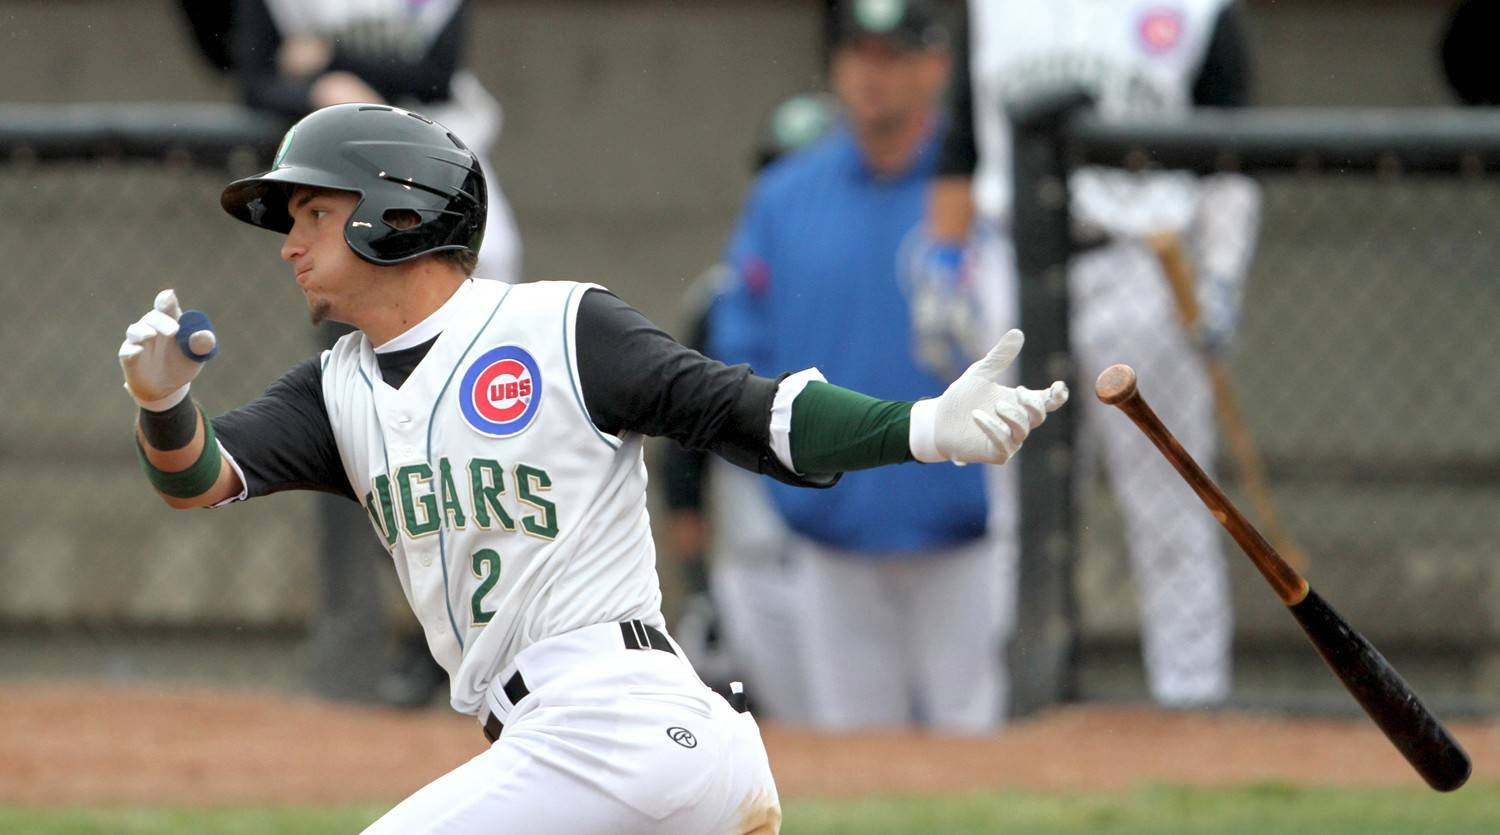 Photo courtesy of Kane County Cougars ¬ Cubs prospect Albert Almora of the Kane County Cougars has had a solid start in Geneva with the Class A club.